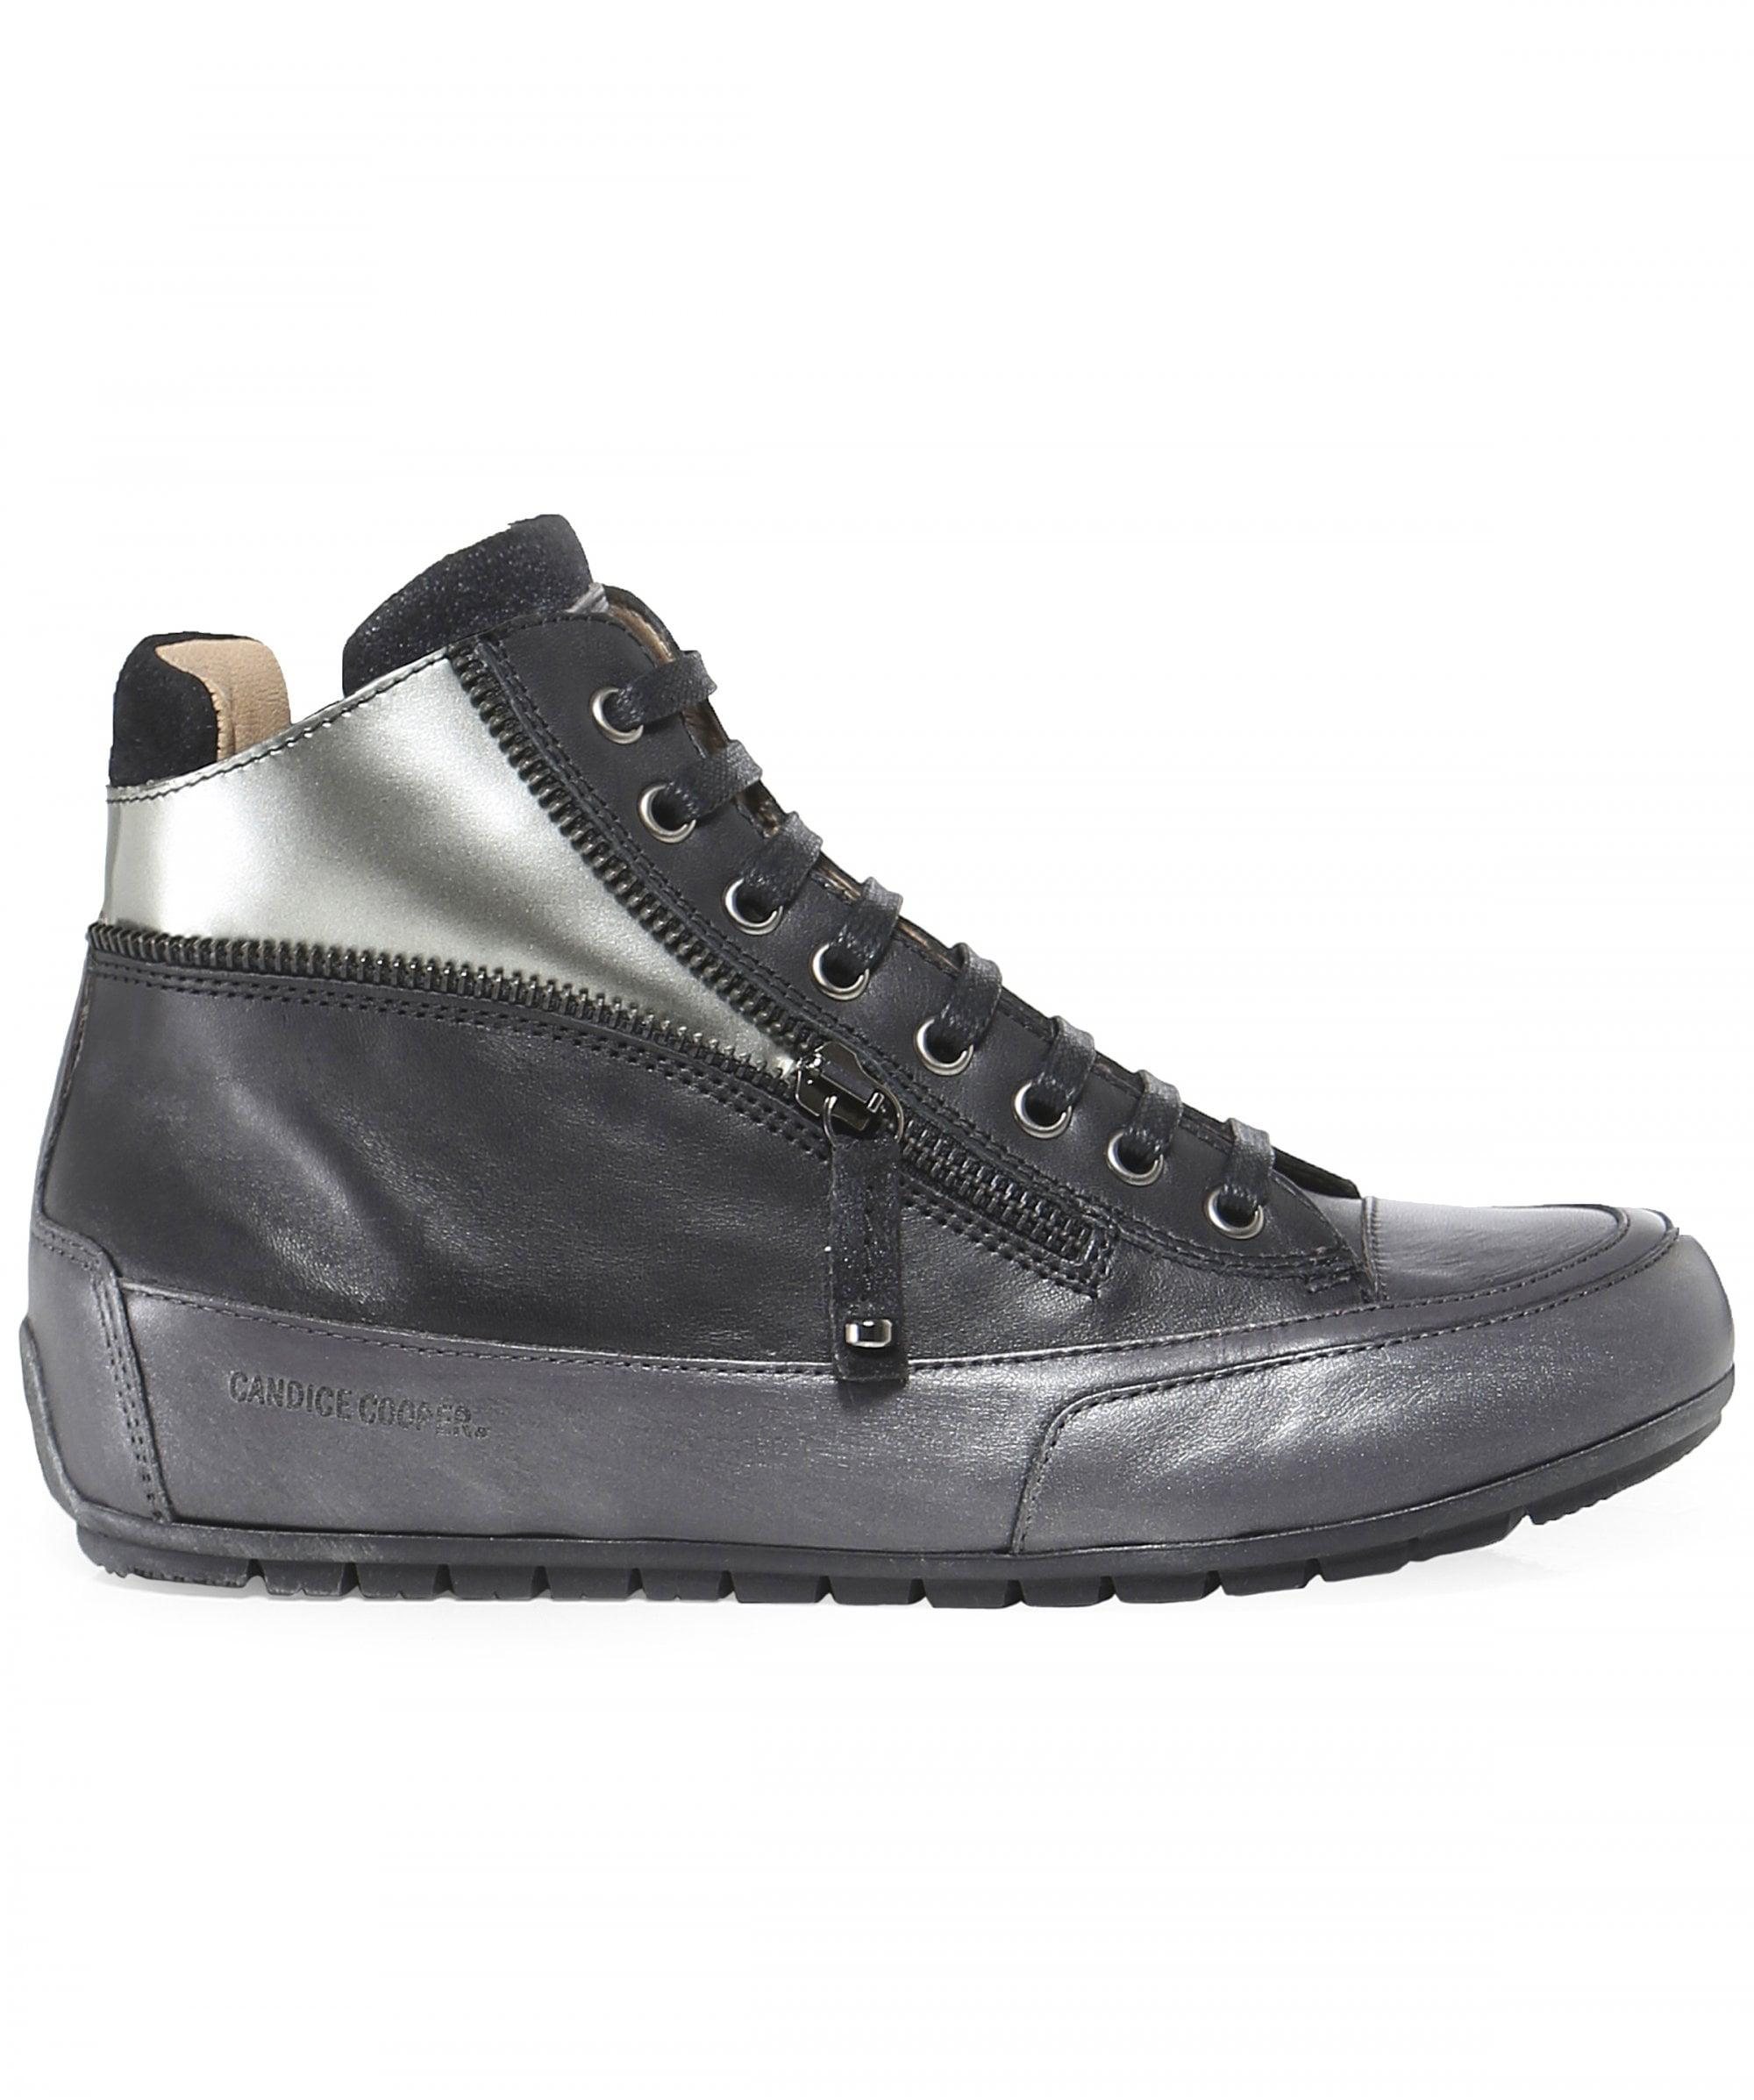 4475739f5fd48 Candice Cooper Beverly High Top Trainers in Black - Save 17.02127659574468%  - Lyst